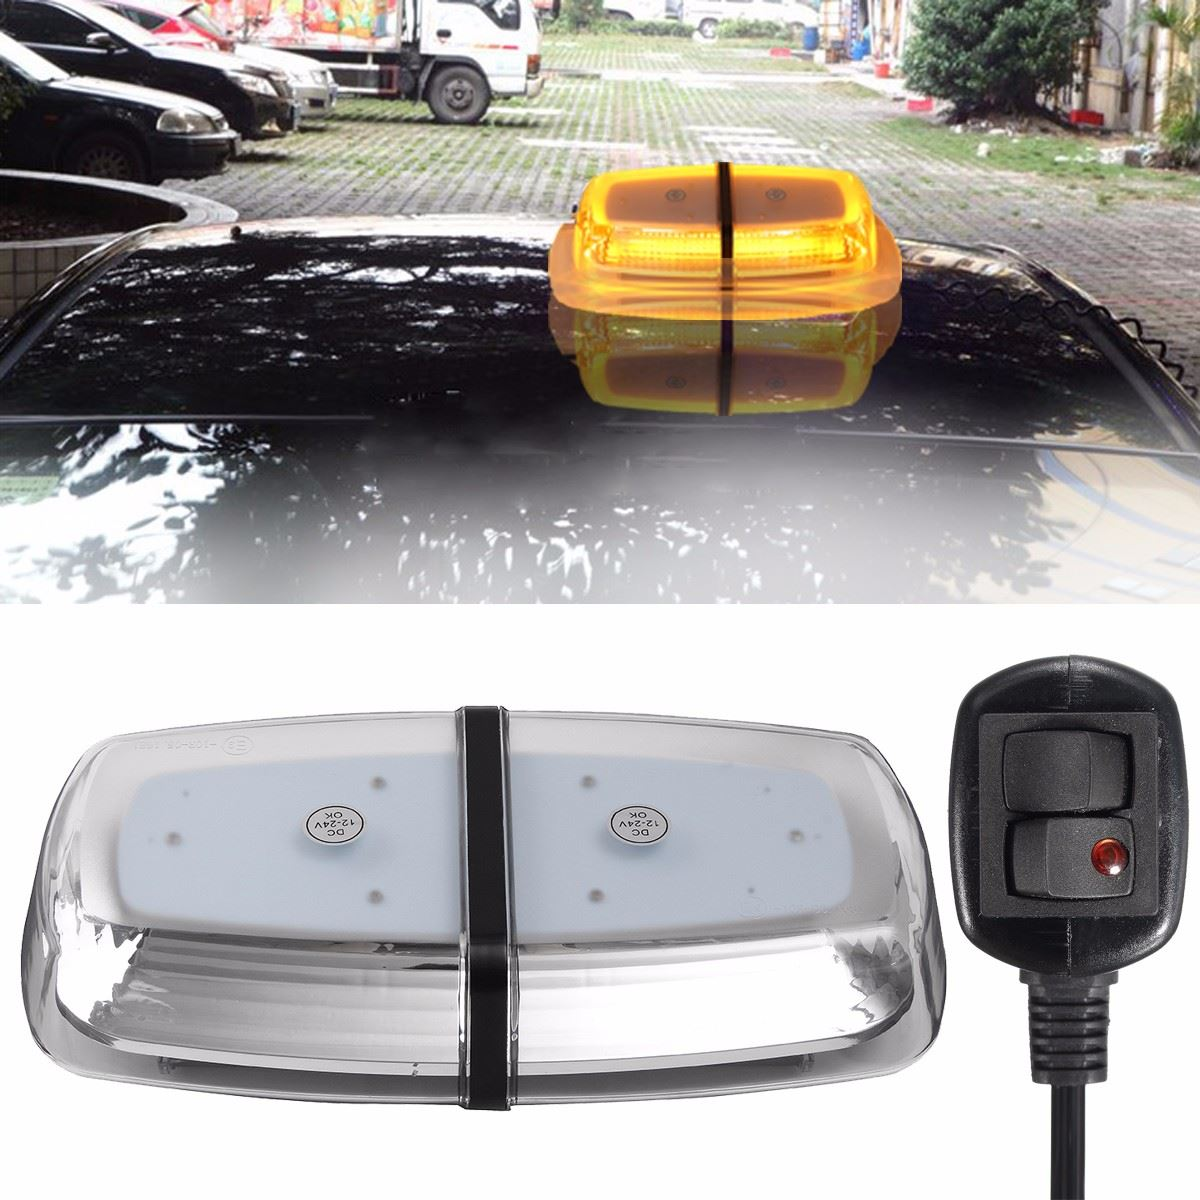 72LEDs Yellow 72W Car Roof Warning Light Dome Flashing Strobe Emergency Vehicle For Police Lights partol black car roof rack cross bars roof luggage carrier cargo boxes bike rack 45kg 100lbs for honda pilot 2013 2014 2015